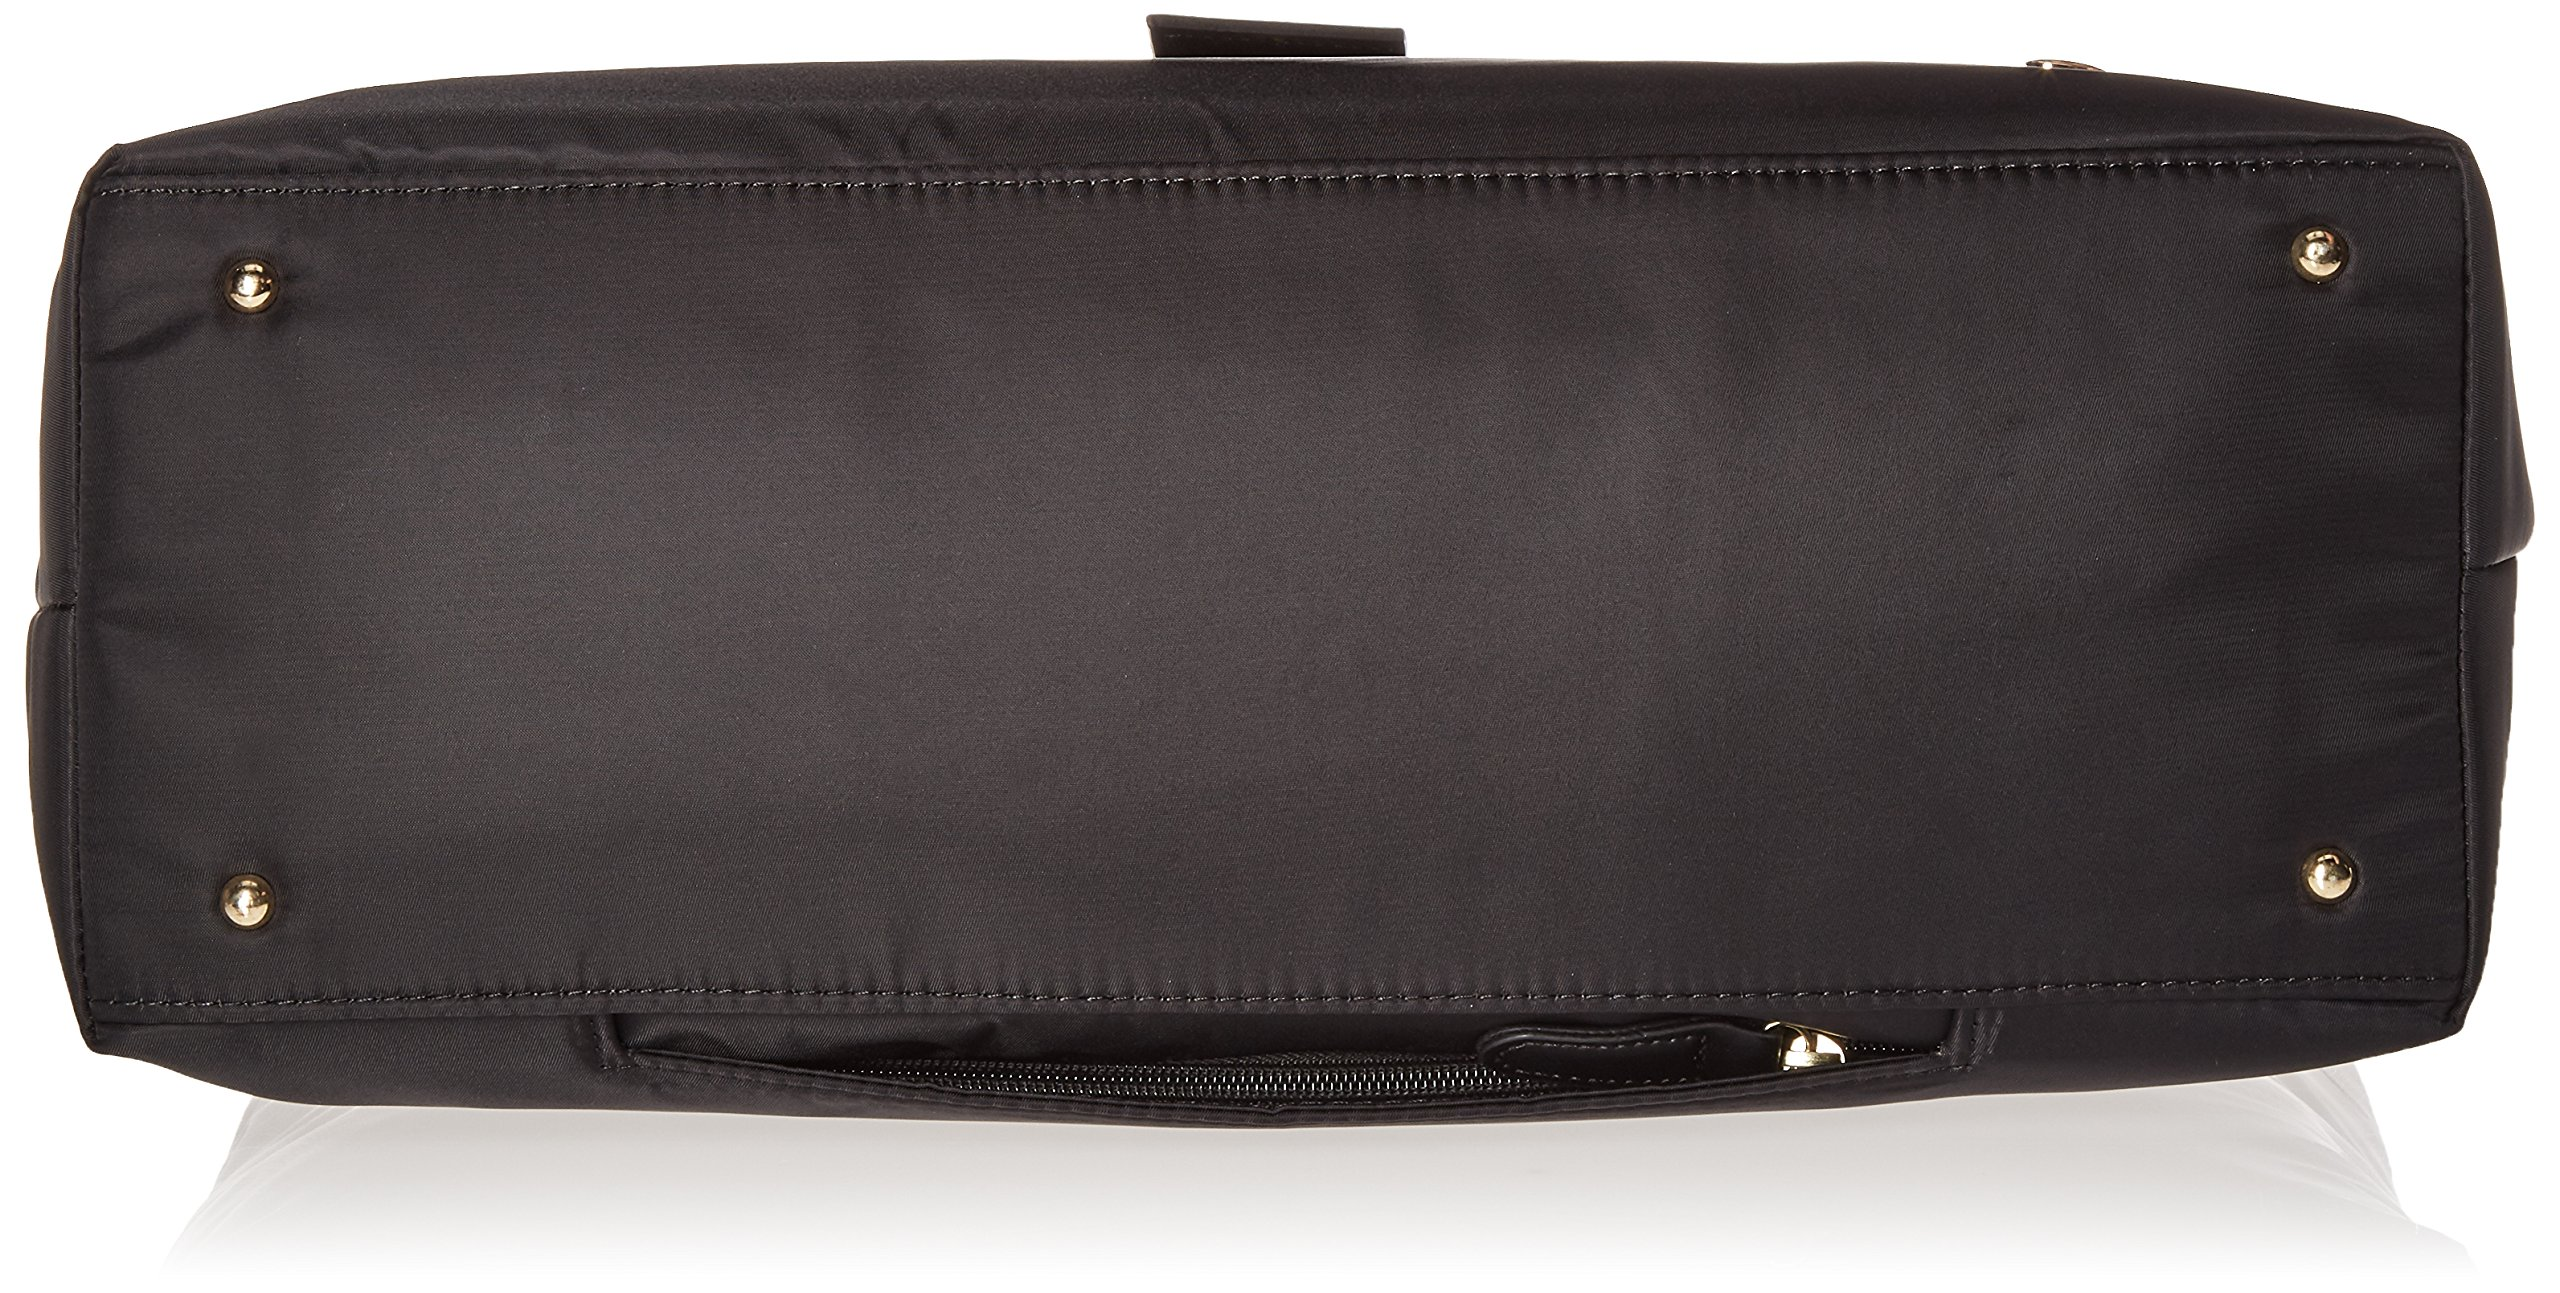 Wenger Luggage Ana 16'' Women's Laptop Tote Bag, Black, One Size by Wenger (Image #4)